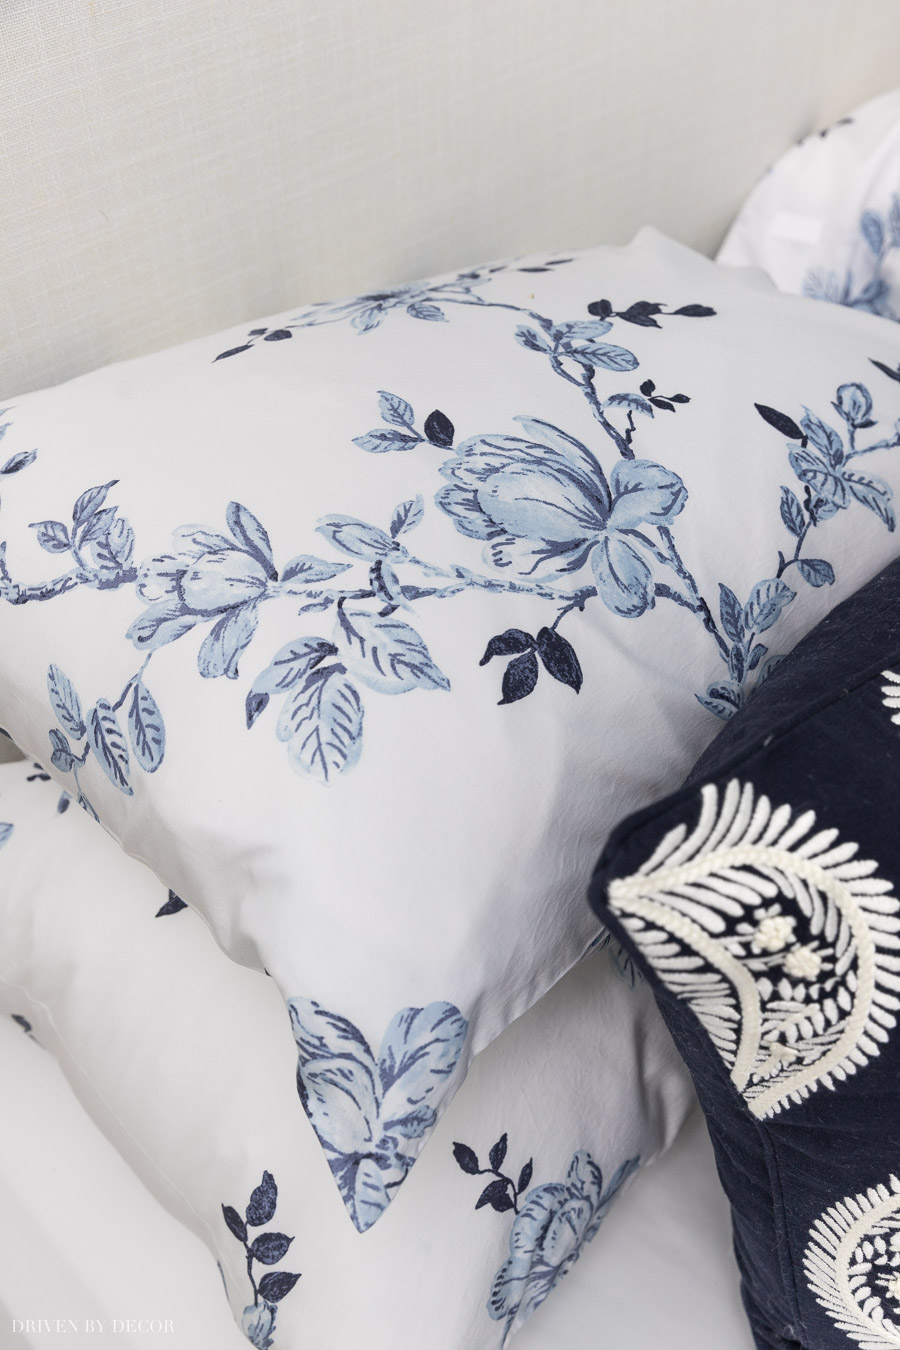 Love this gorgeous pattern of blue and white flowers for sheets or a duvet!